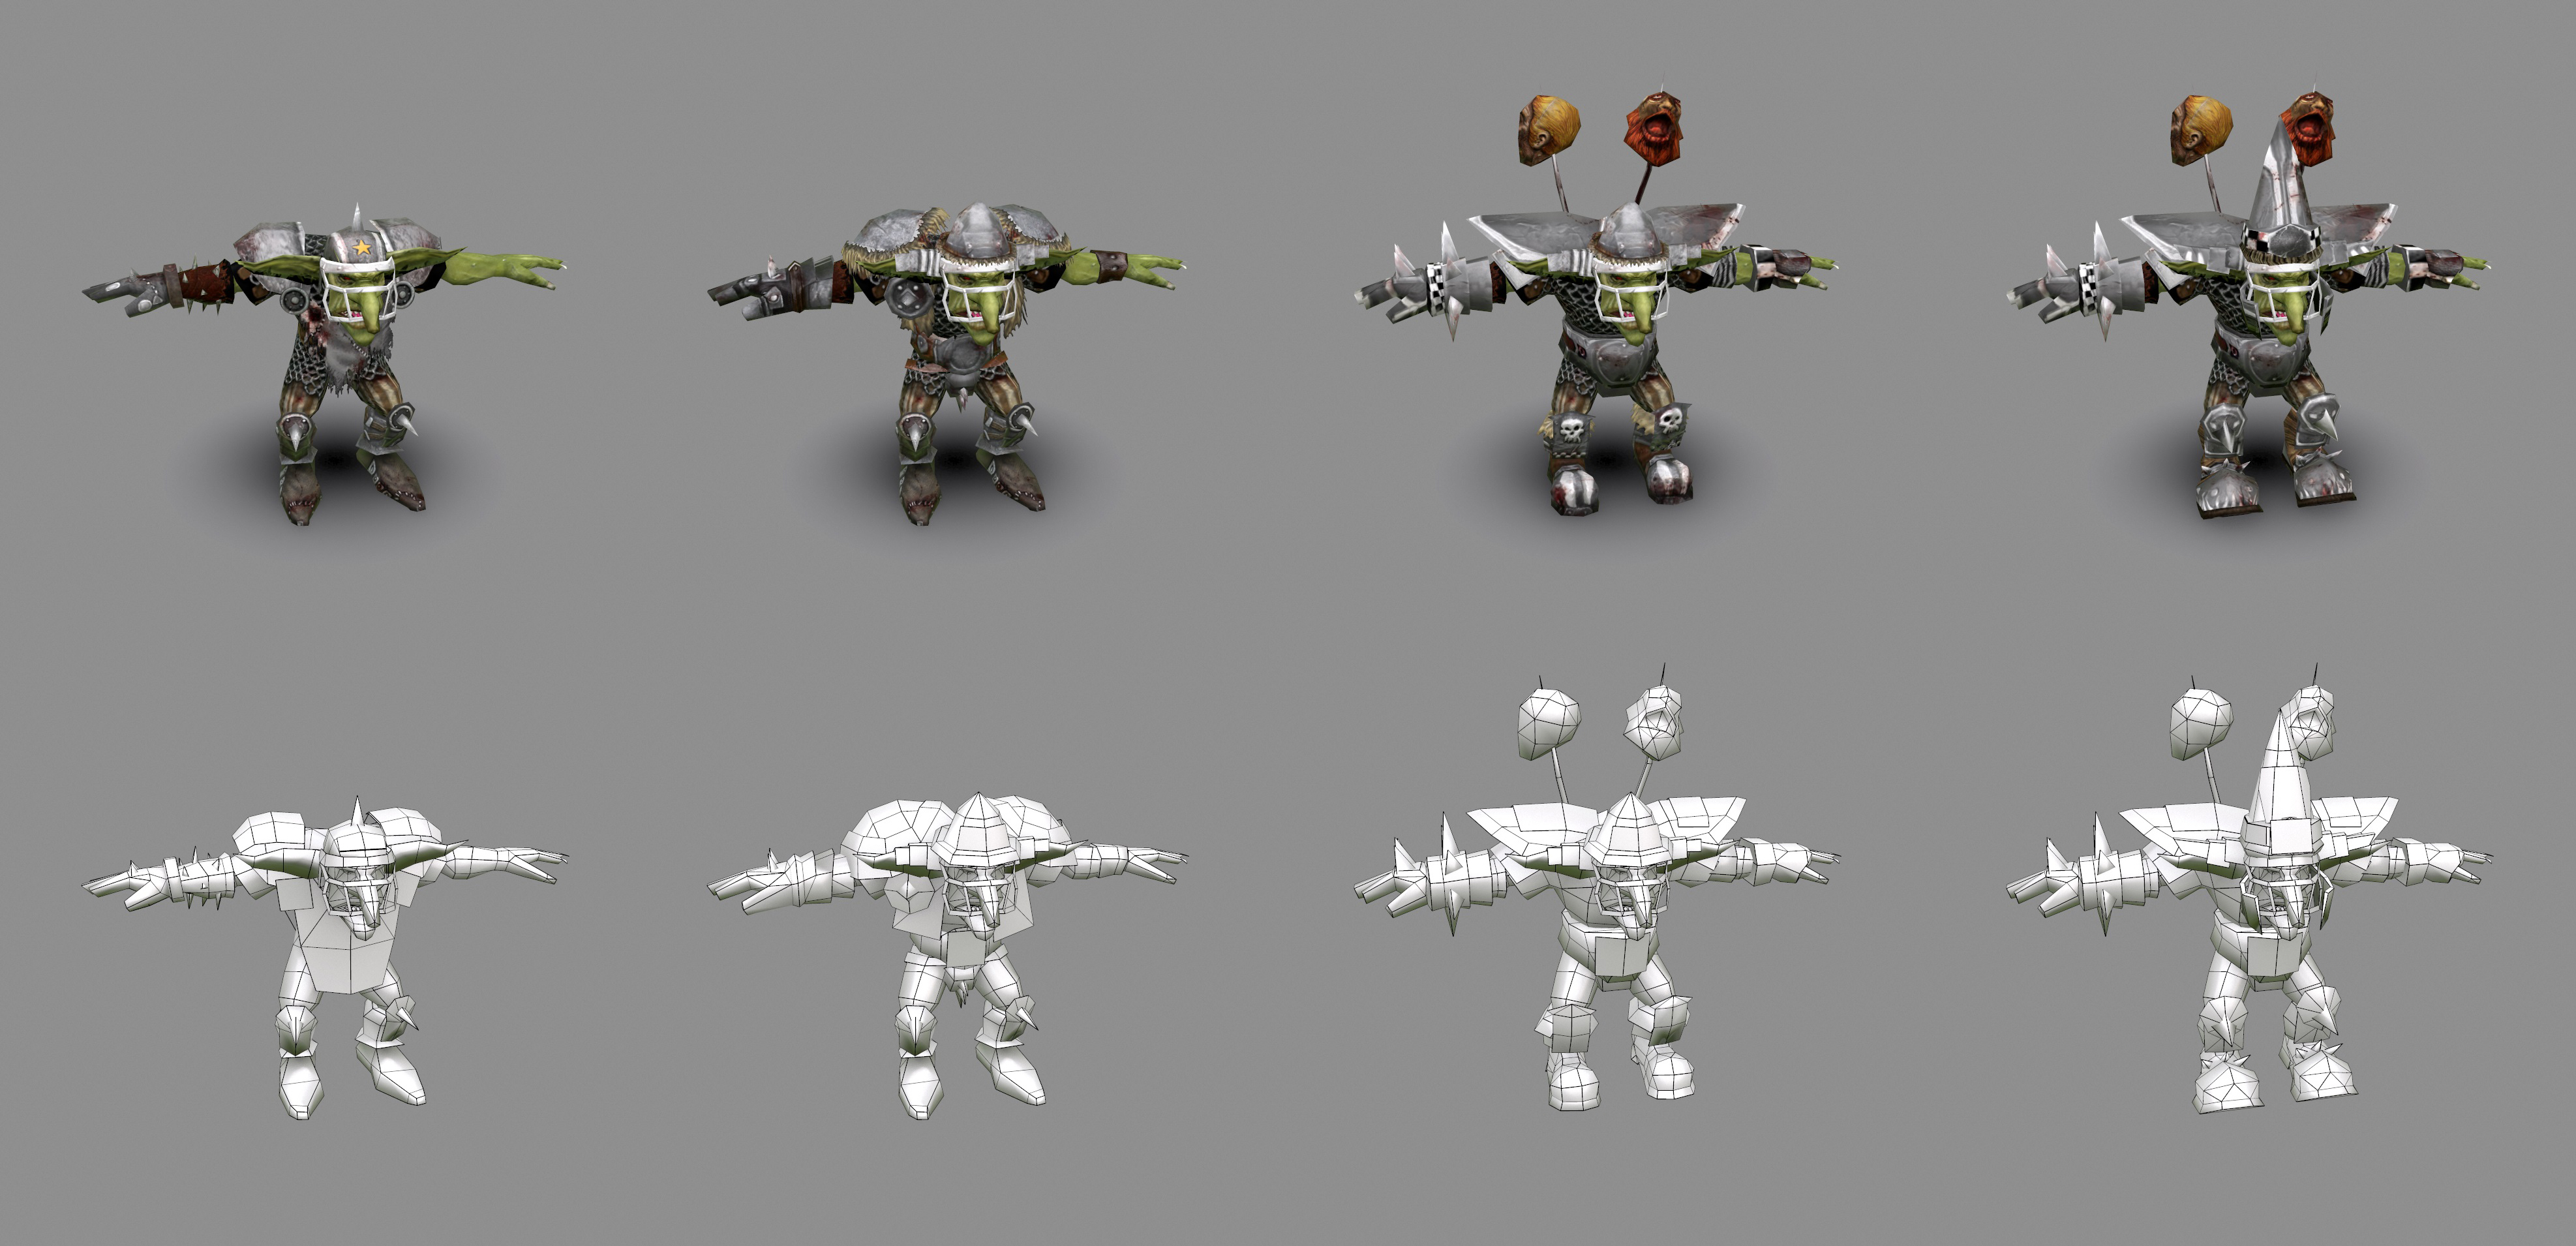 2014_BloodBowl_F.Beudin_Orc-Goblin